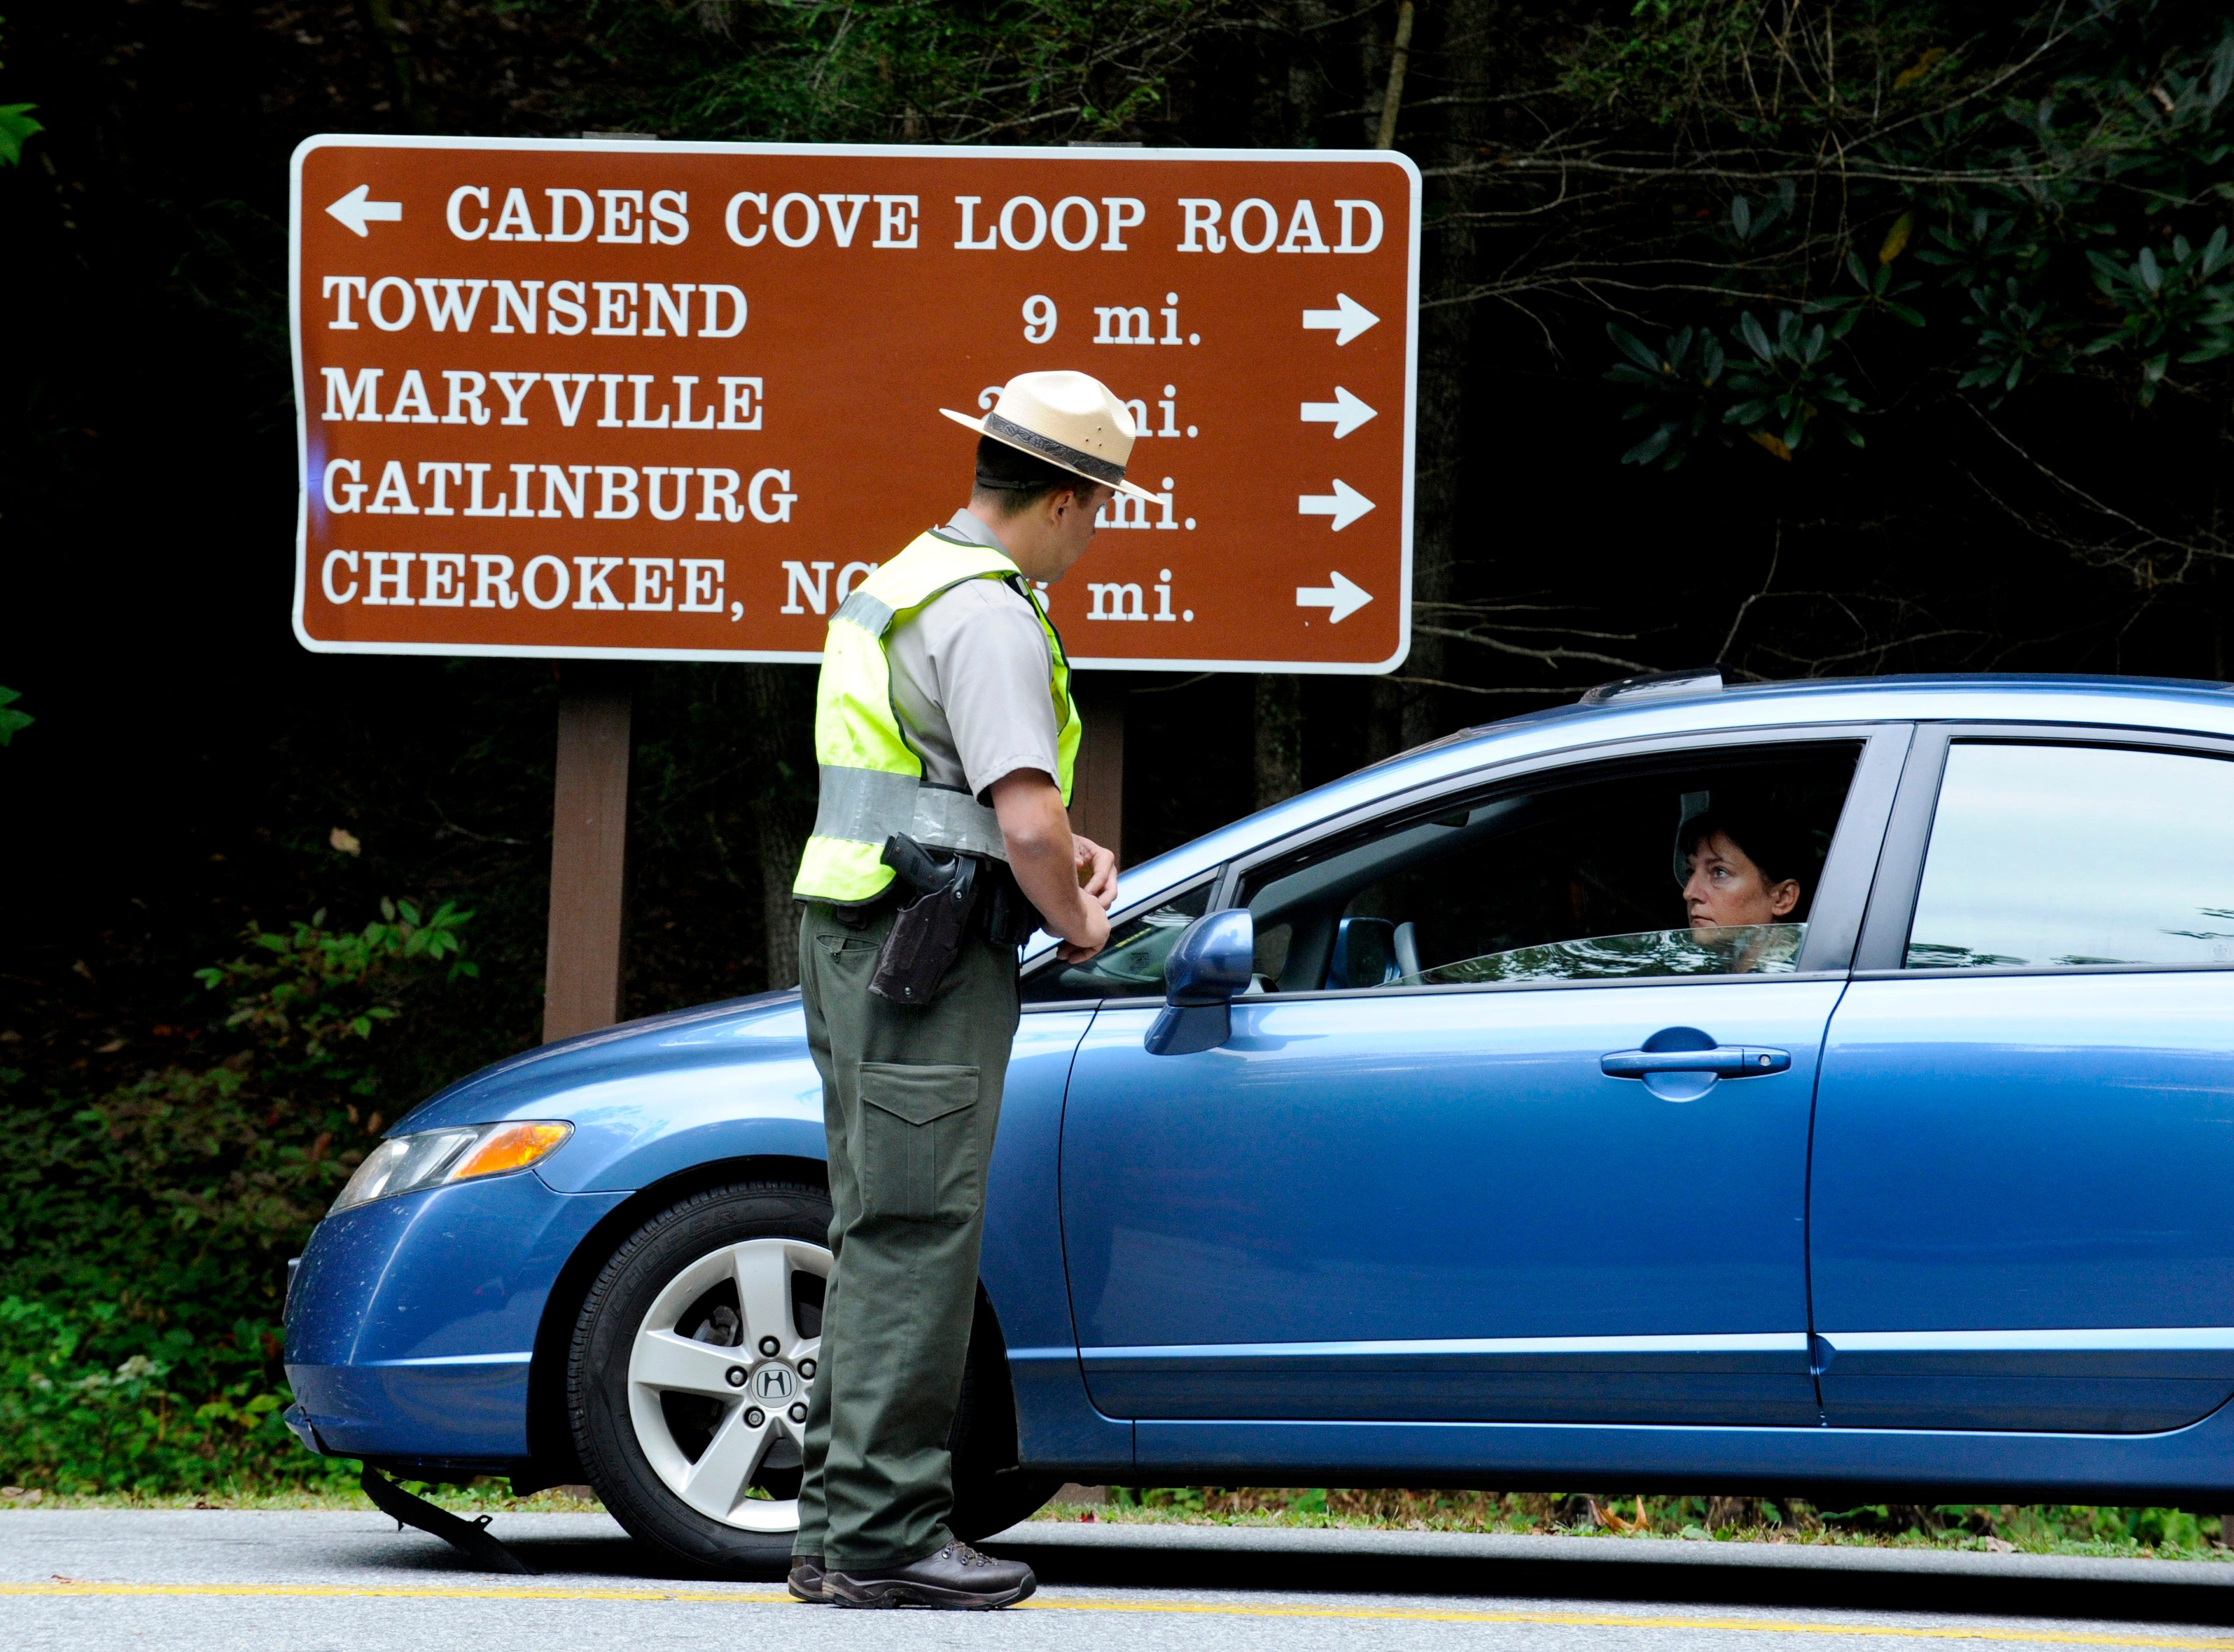 National Park Service Ranger Phil Basak explains to visitors to Cades Cove in the Great Smoky Mountain National Park Tuesday, Oct. 1, 2013 that the loop road will be closed as long as the government is shut down. (MICHAEL PATRICK/NEWS SENTINEL)